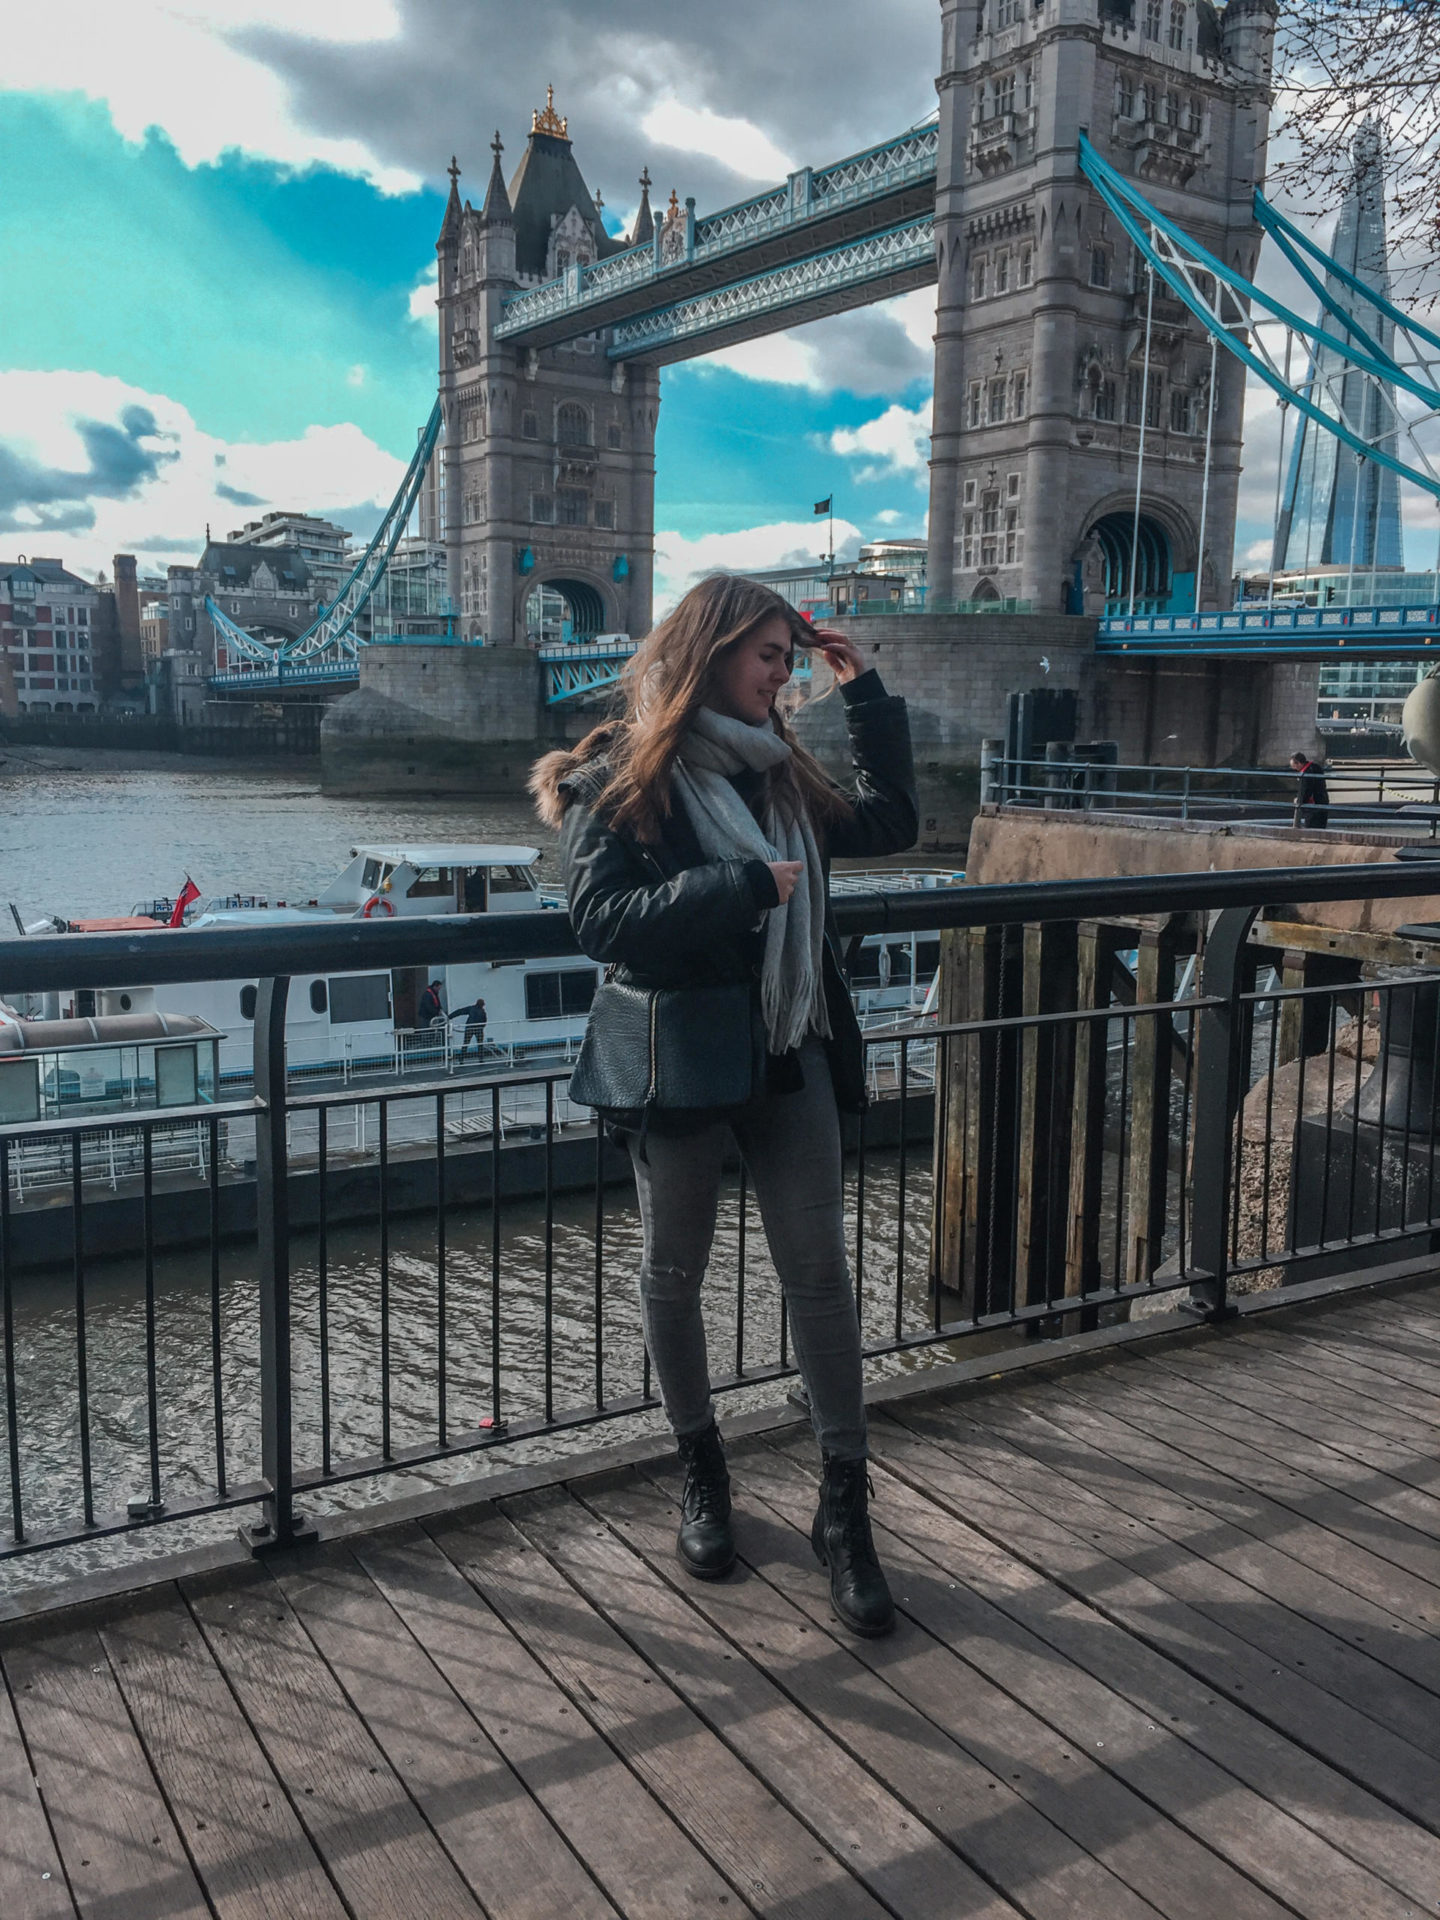 Top 5 Instagram Locations in London